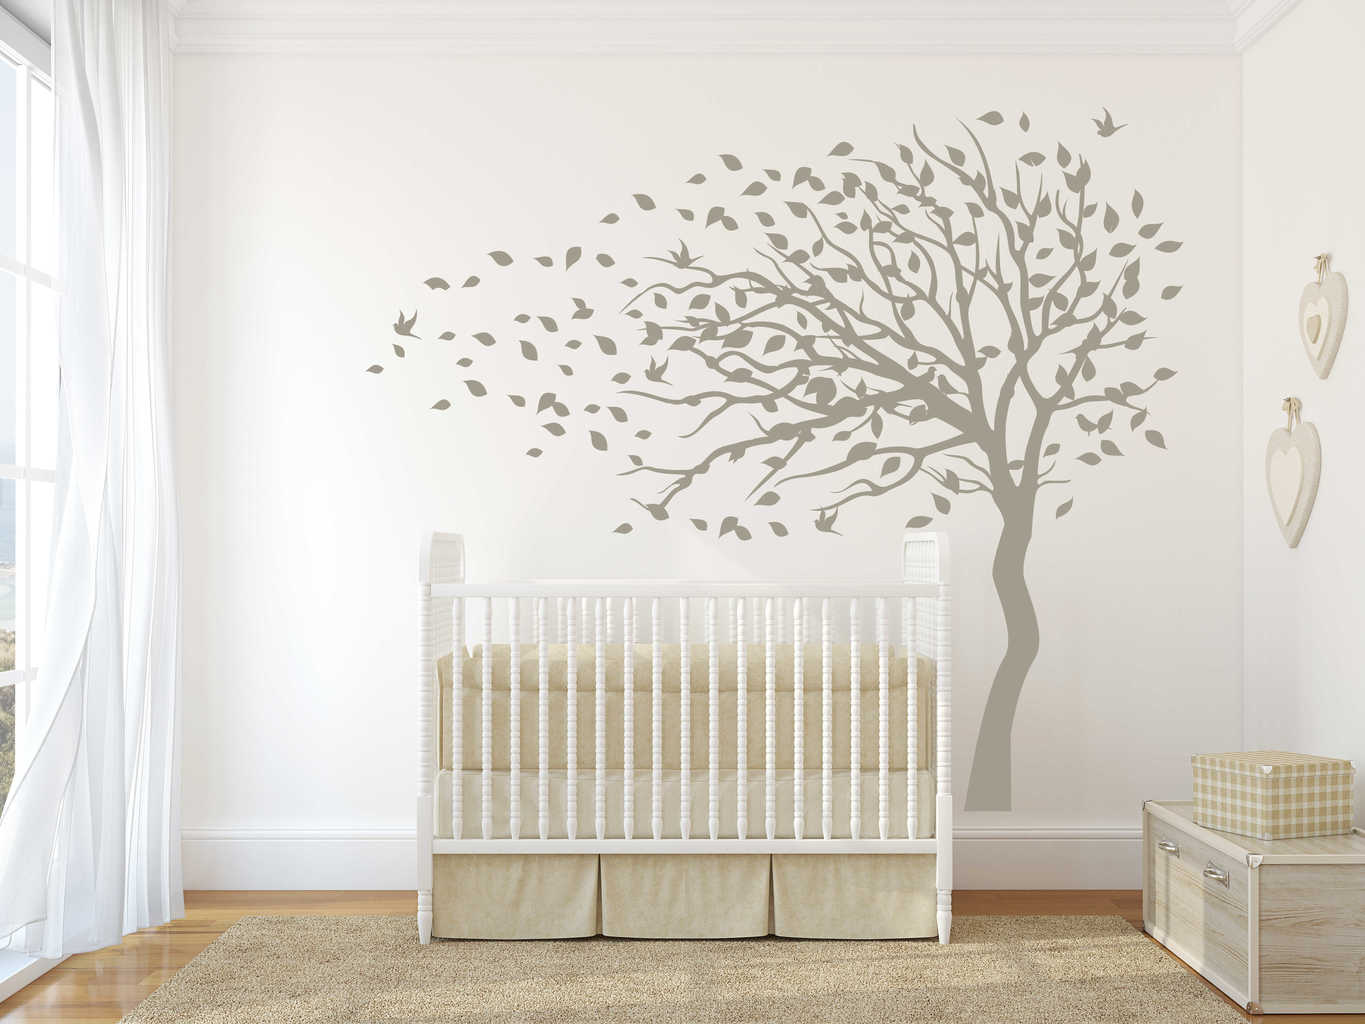 Designer Wall Decals Amp Stickers Handmade To Order